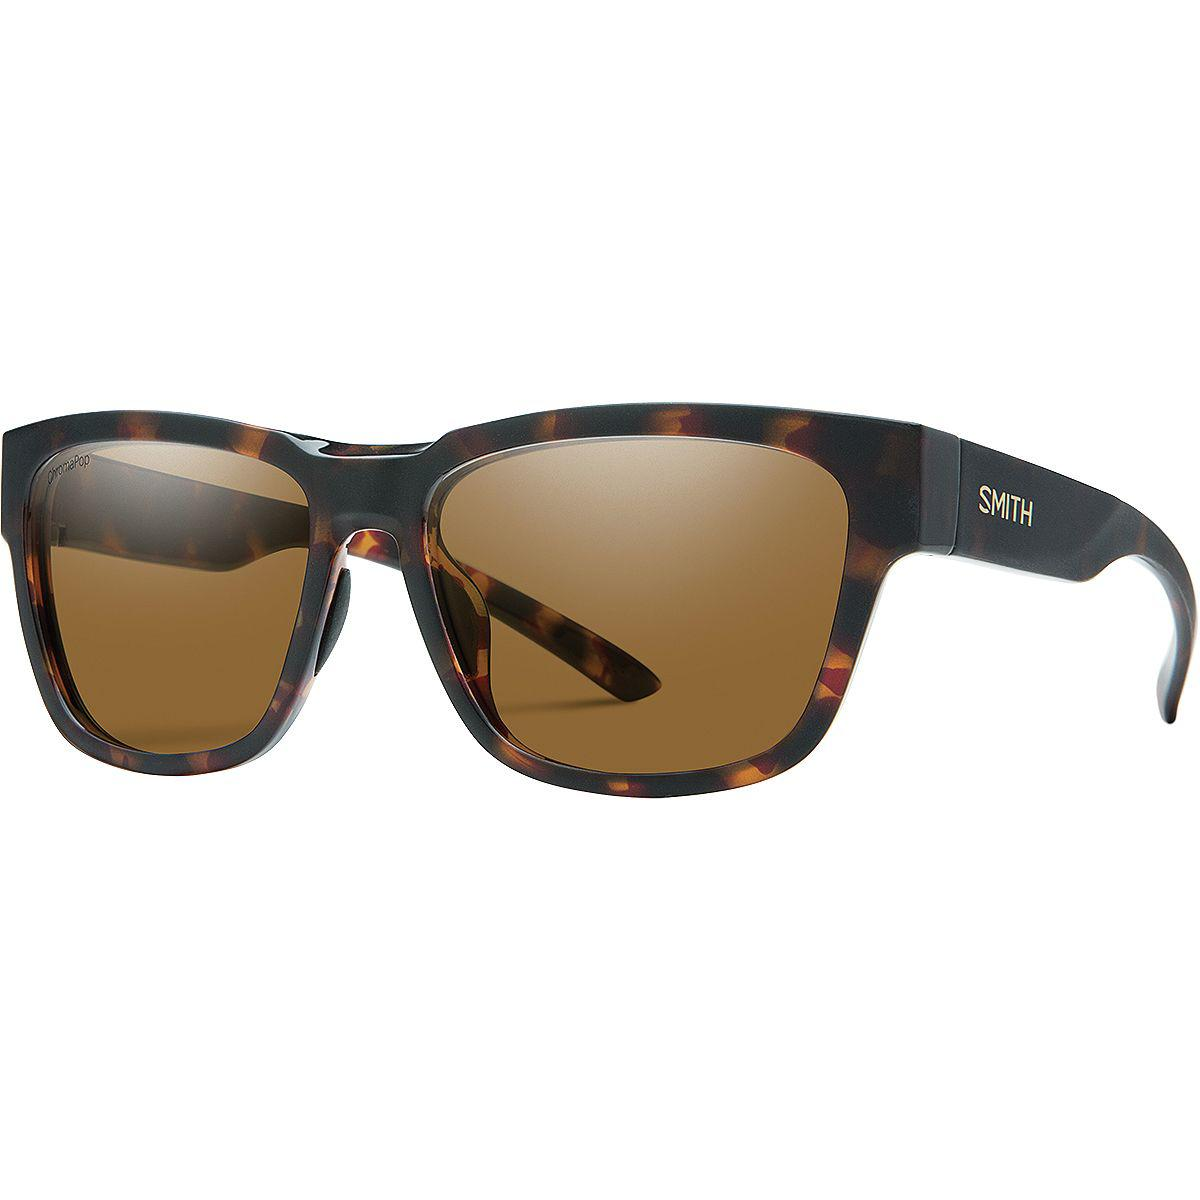 8ed6e6ab38b2 Smith - Brown Lowdown 2 Chromapop Polarized Sunglasses for Men - Lyst. View  fullscreen